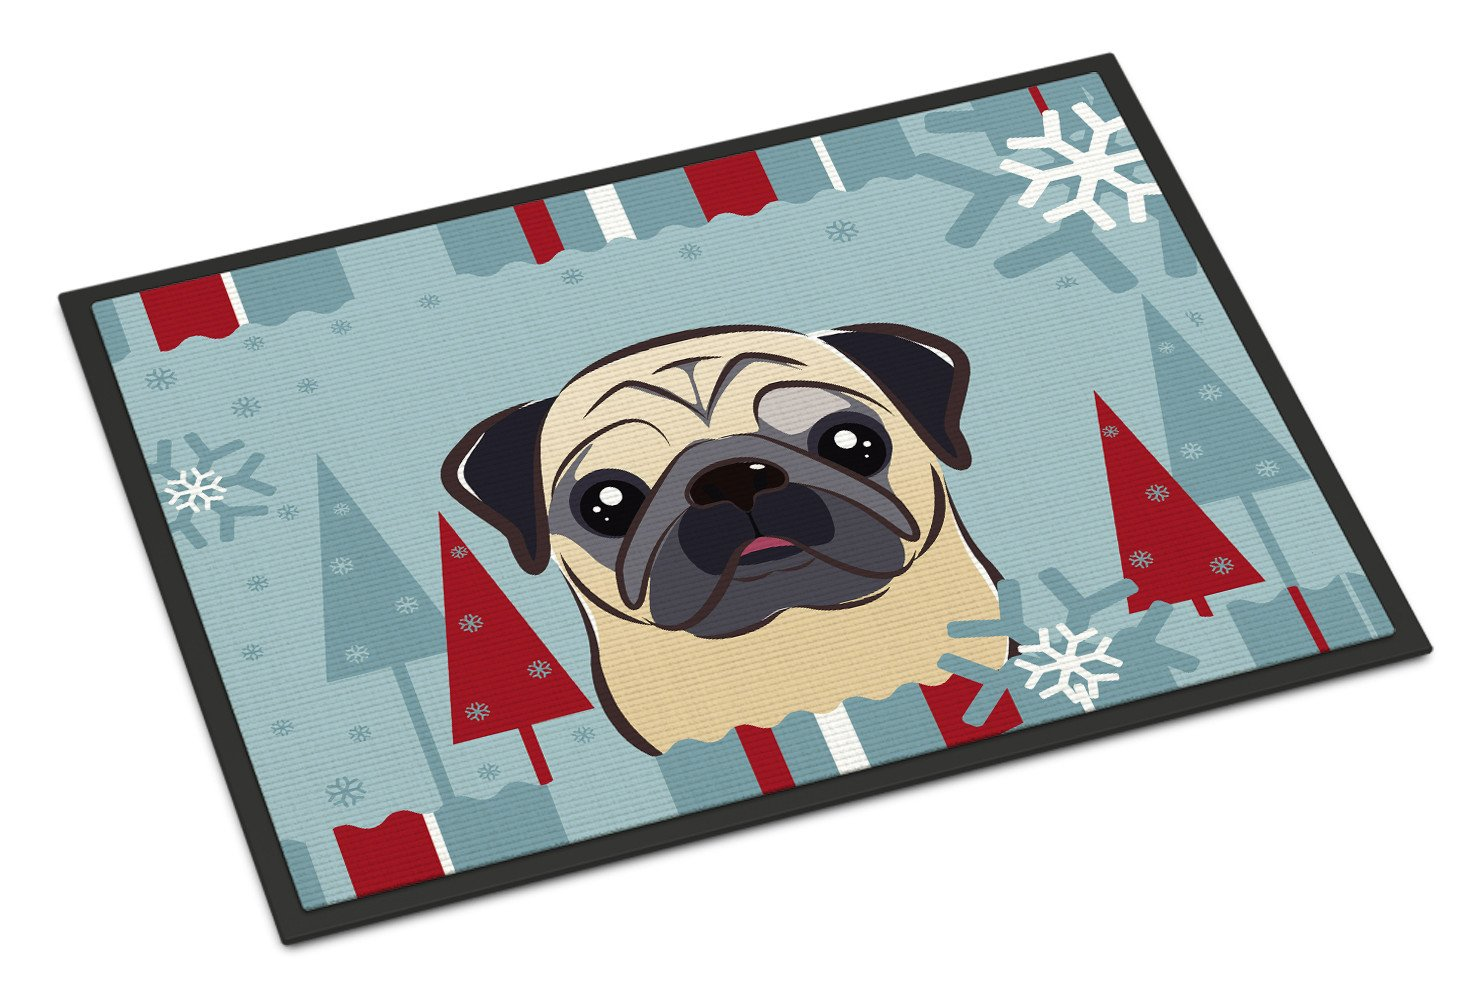 Winter Holiday Fawn Pug Indoor or Outdoor Mat 18x27 BB1758MAT - the-store.com